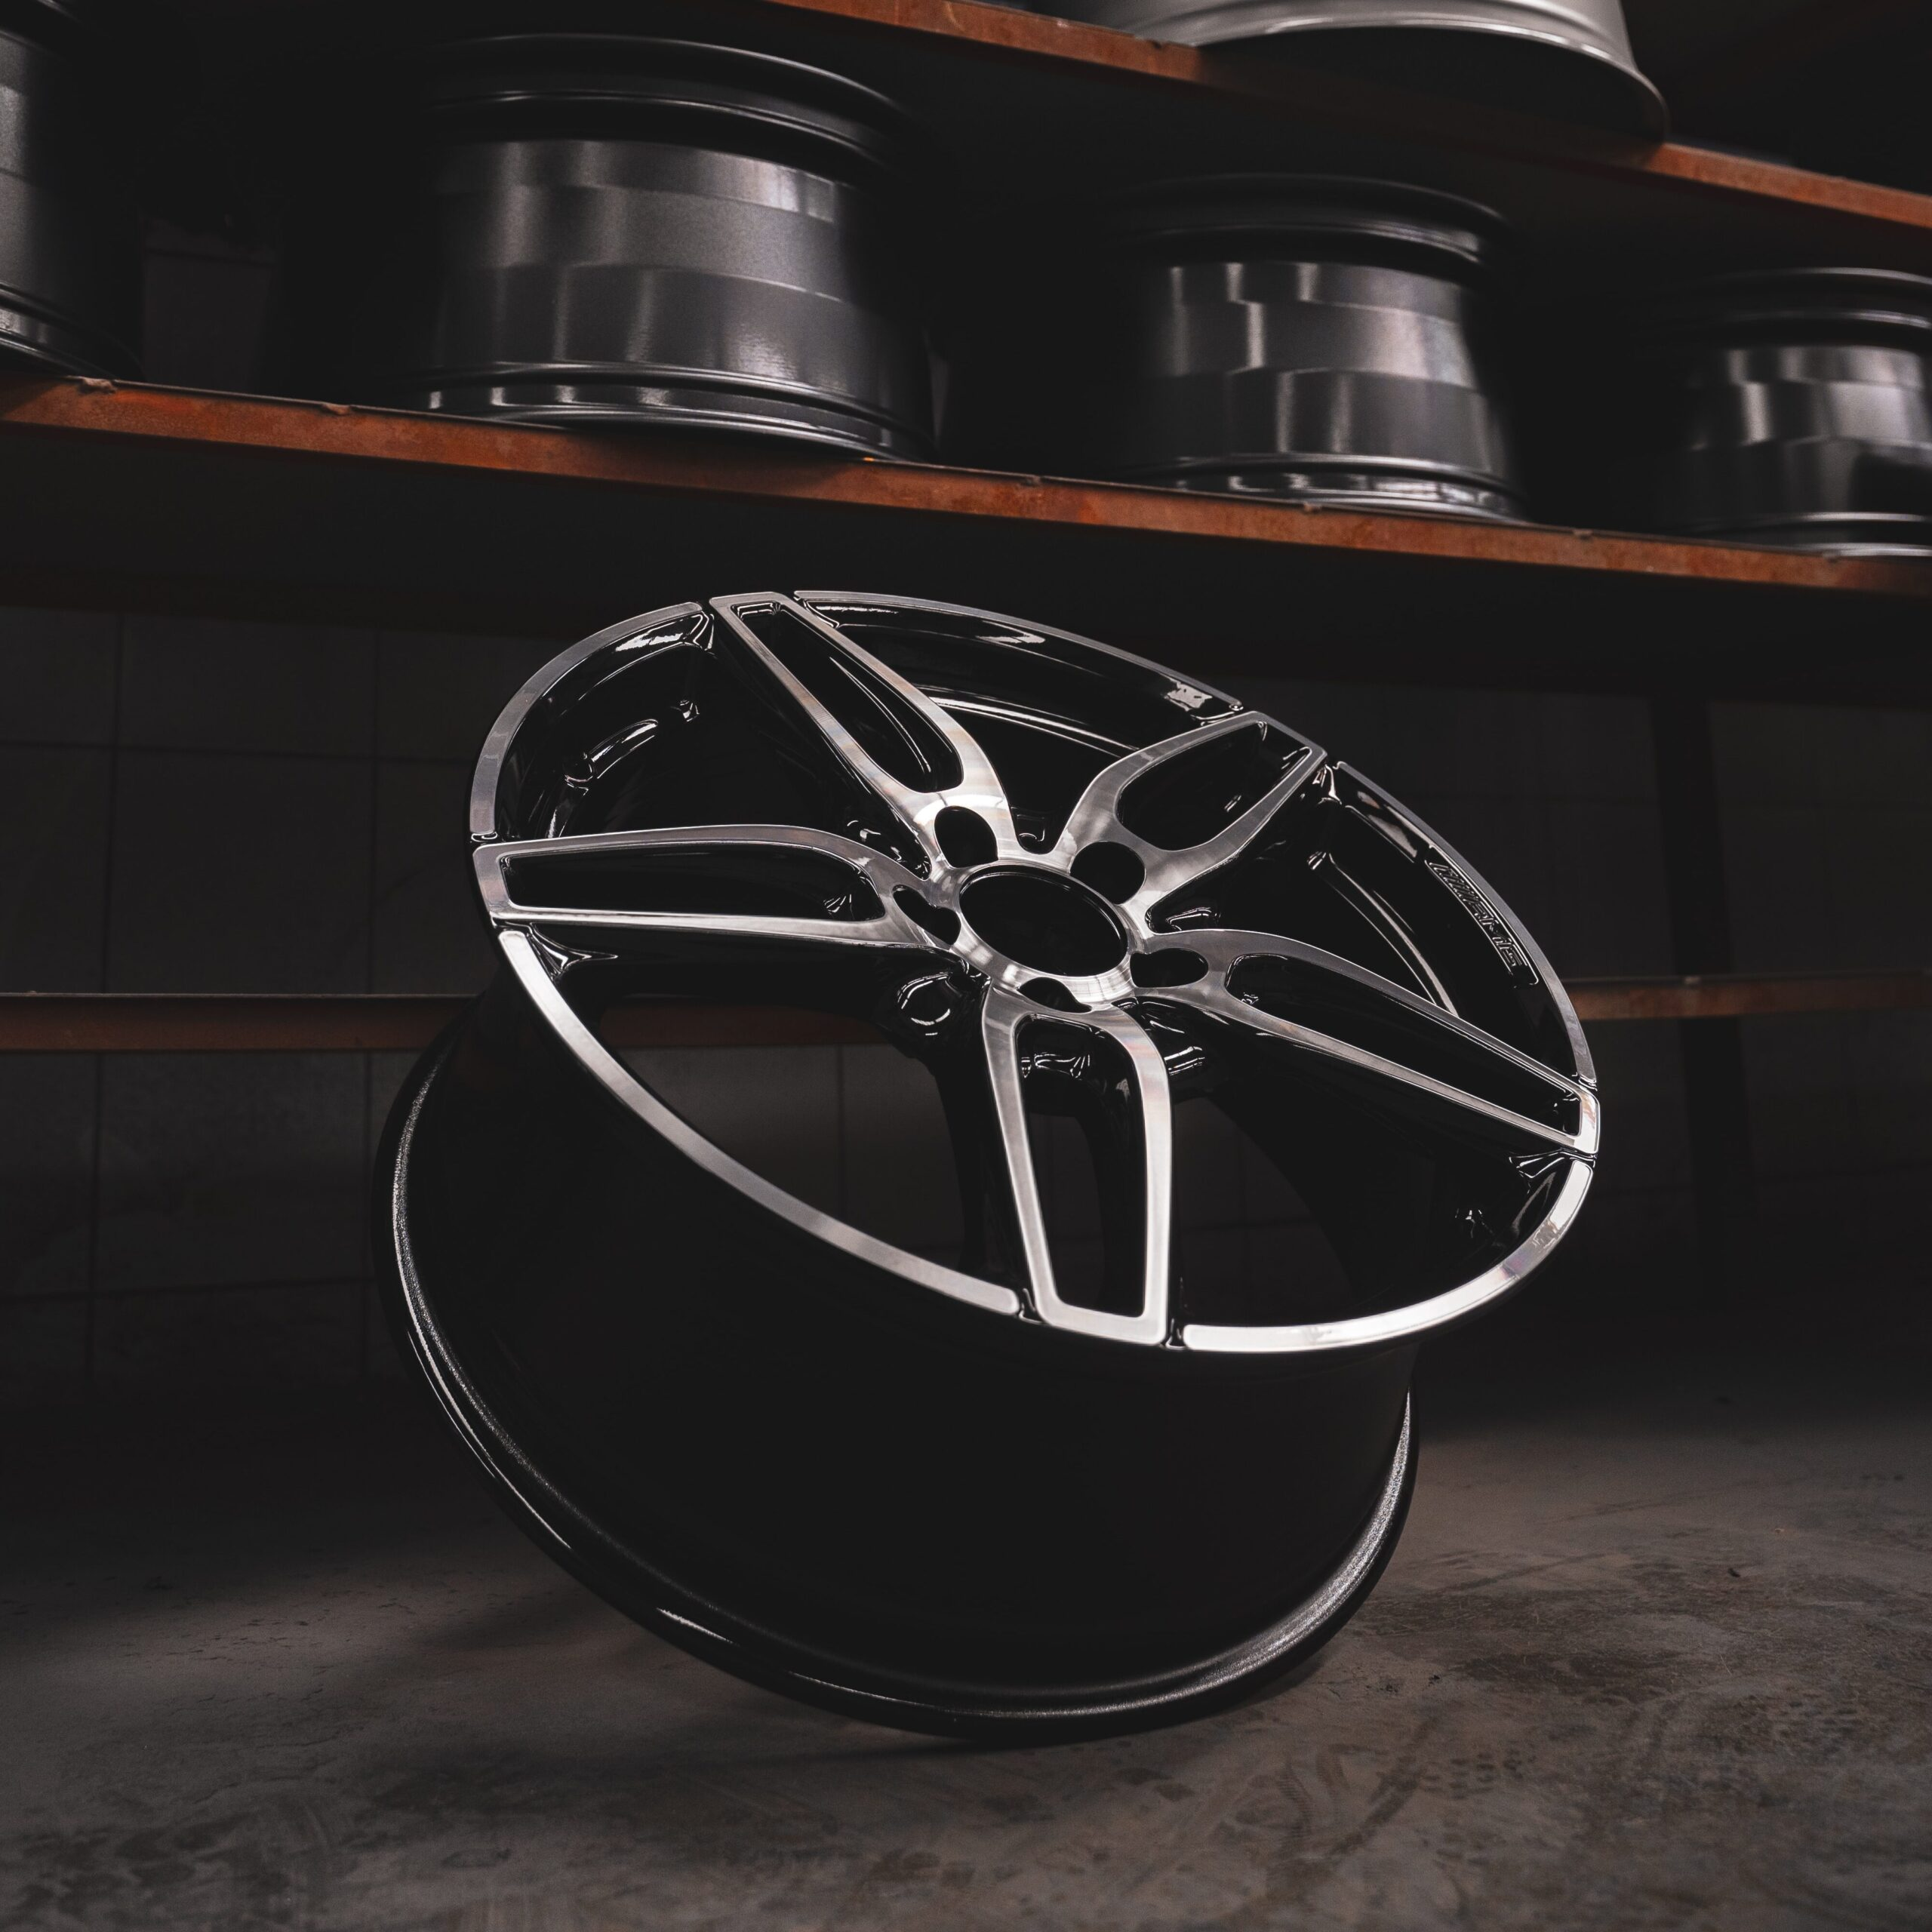 Silver car wheel facing upwards leaning against a shelf with other wheels